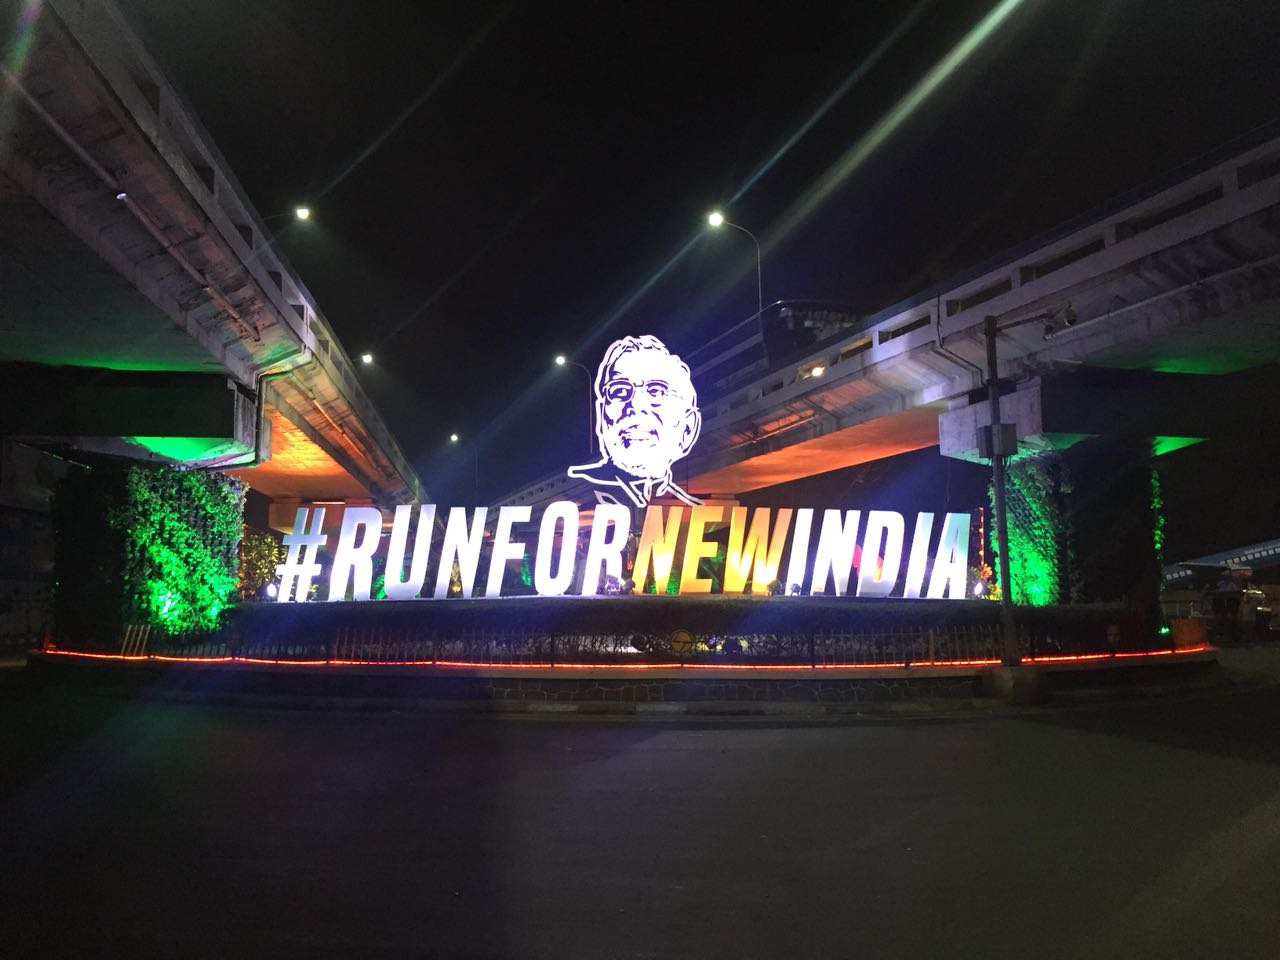 RUN FOR NEW INDIA